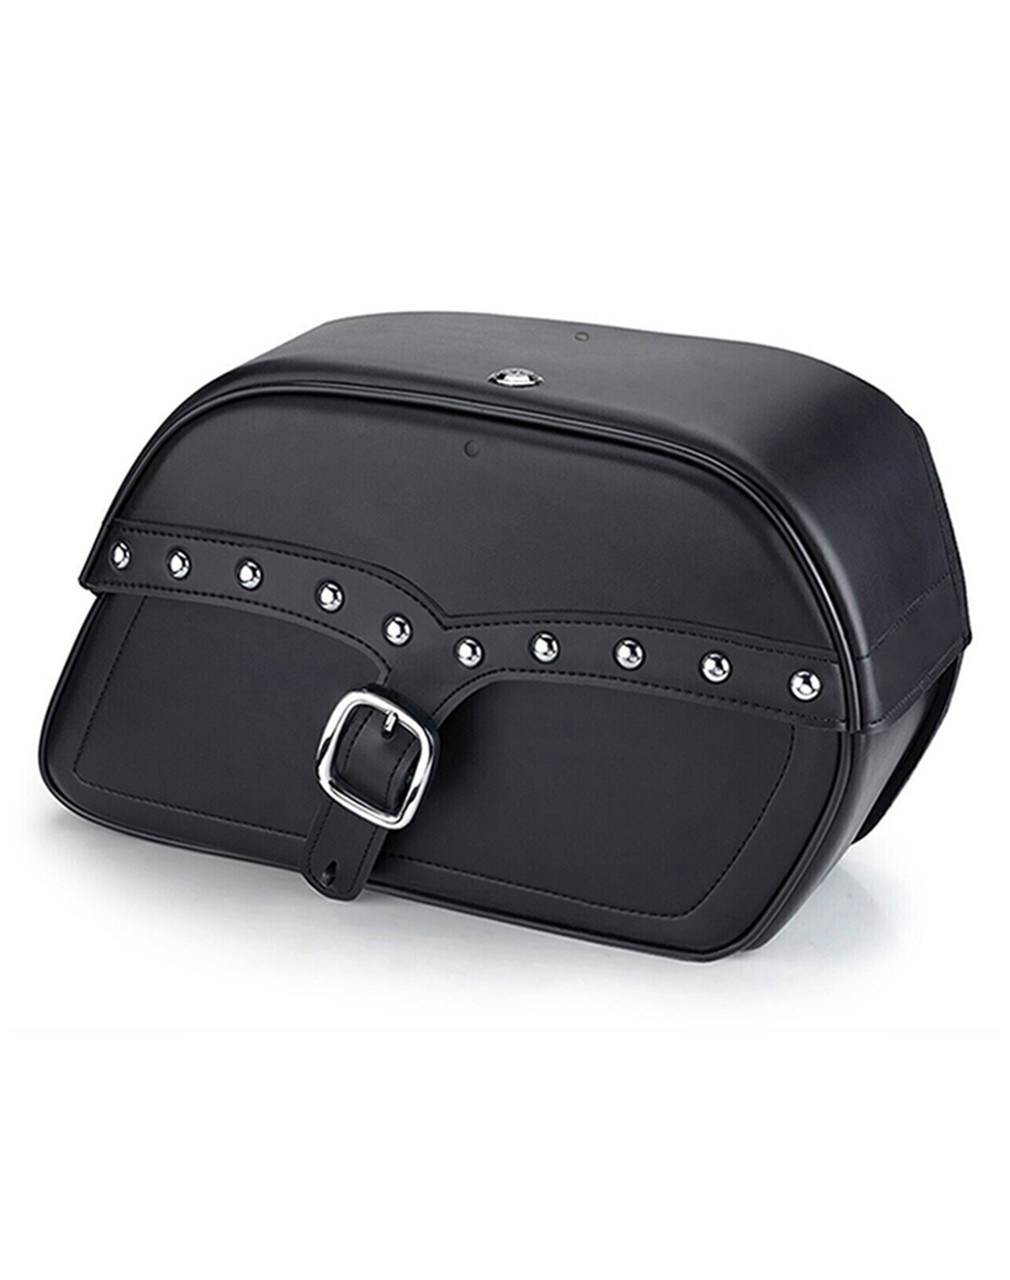 Viking Shock Cutout SS Large Slanted Studded Large Motorcycle Saddlebags For Harley Sportster Forty Eight 48 Main View